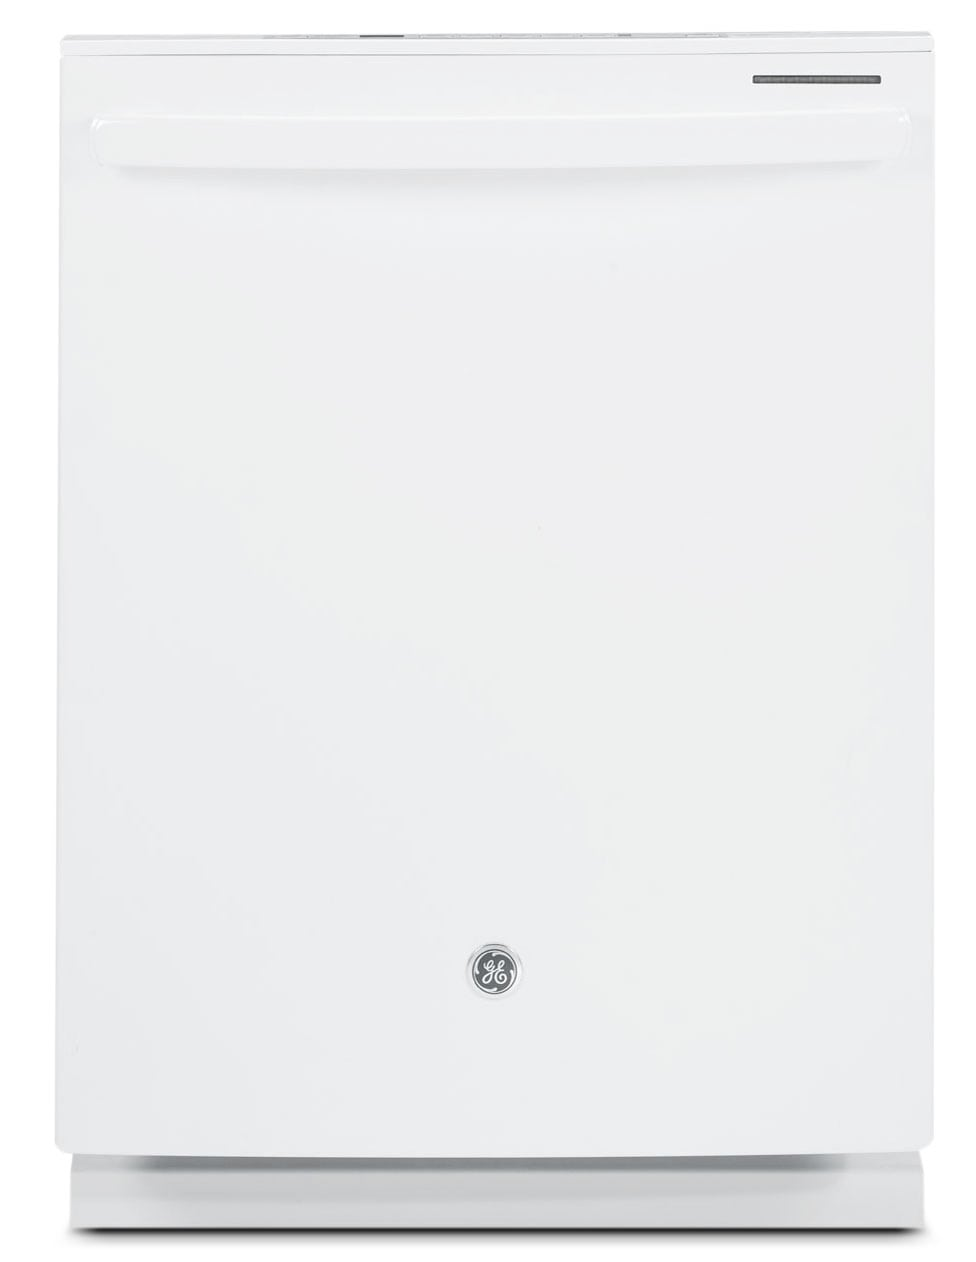 "Clean-Up - GE White 24"" Dishwasher - PDT660SGFWW"